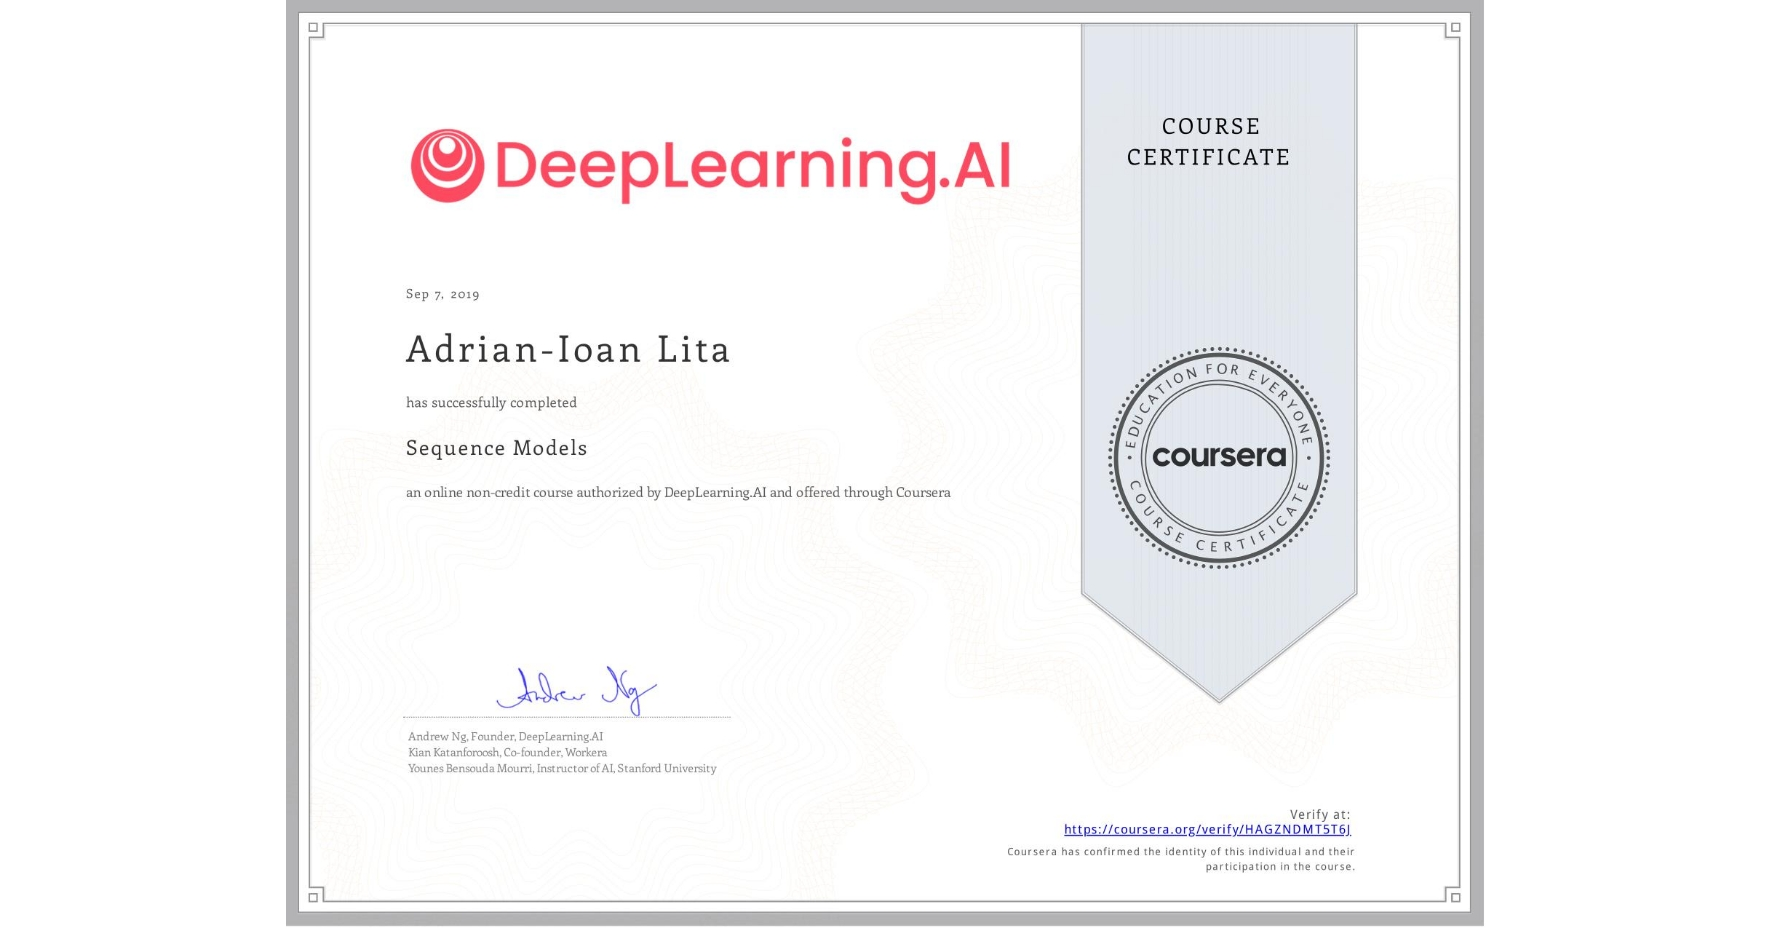 View certificate for Adrian-Ioan Lita, Sequence Models, an online non-credit course authorized by DeepLearning.AI and offered through Coursera